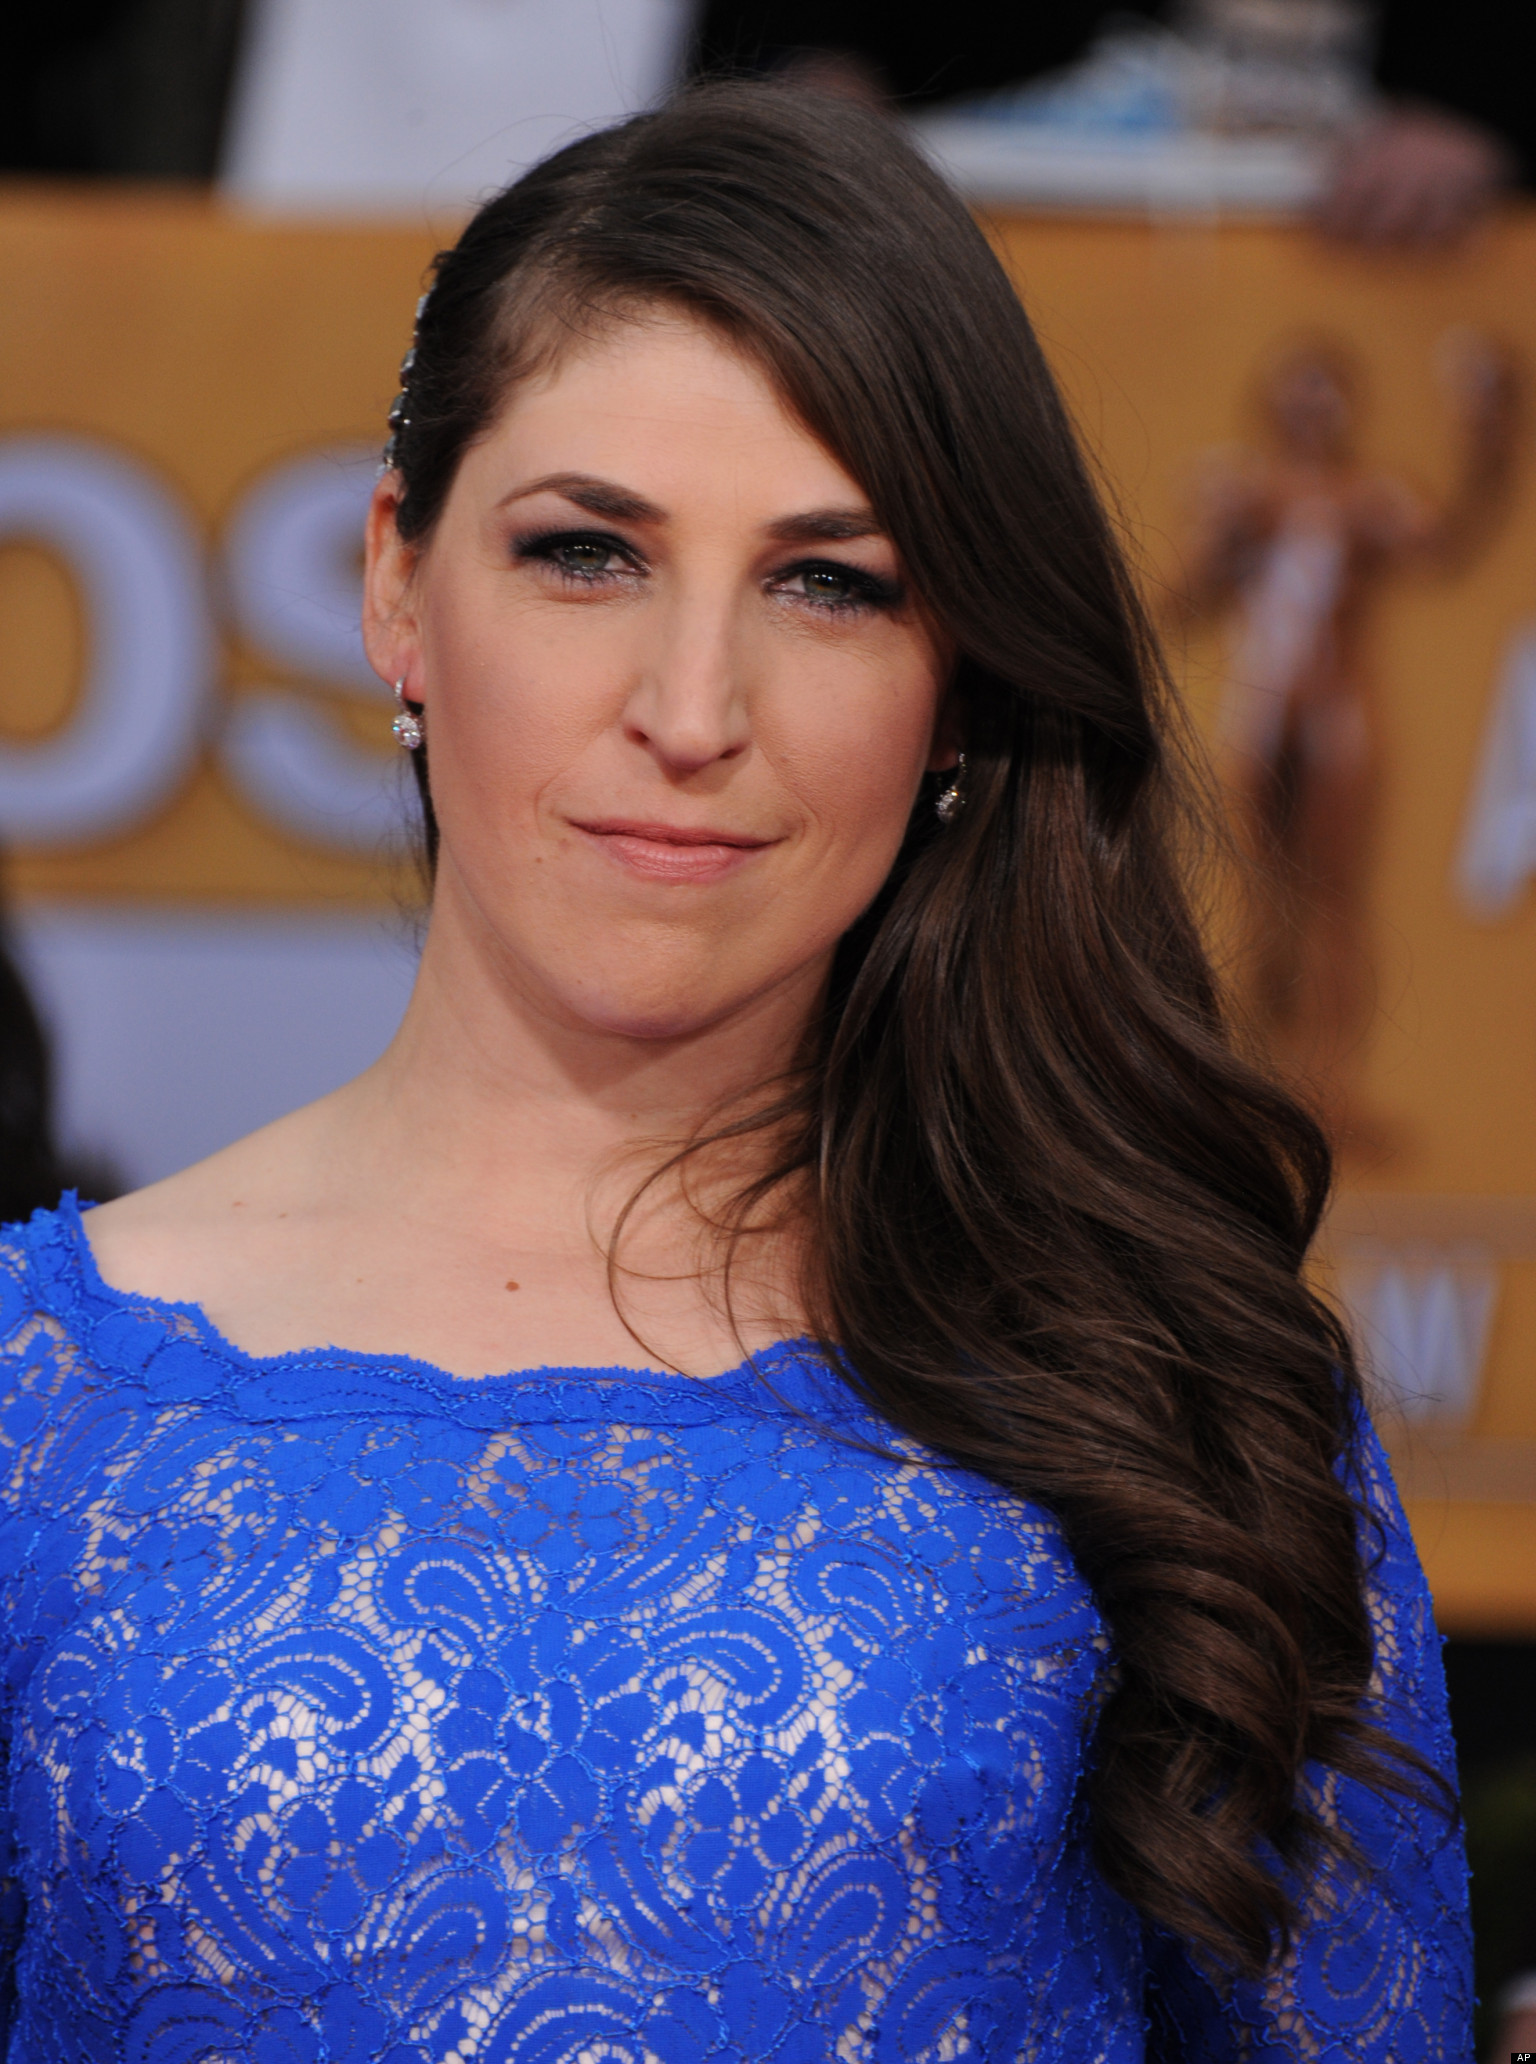 Eden Sher And Mayim Bialik | www.galleryhip.com - The Hippest Pics